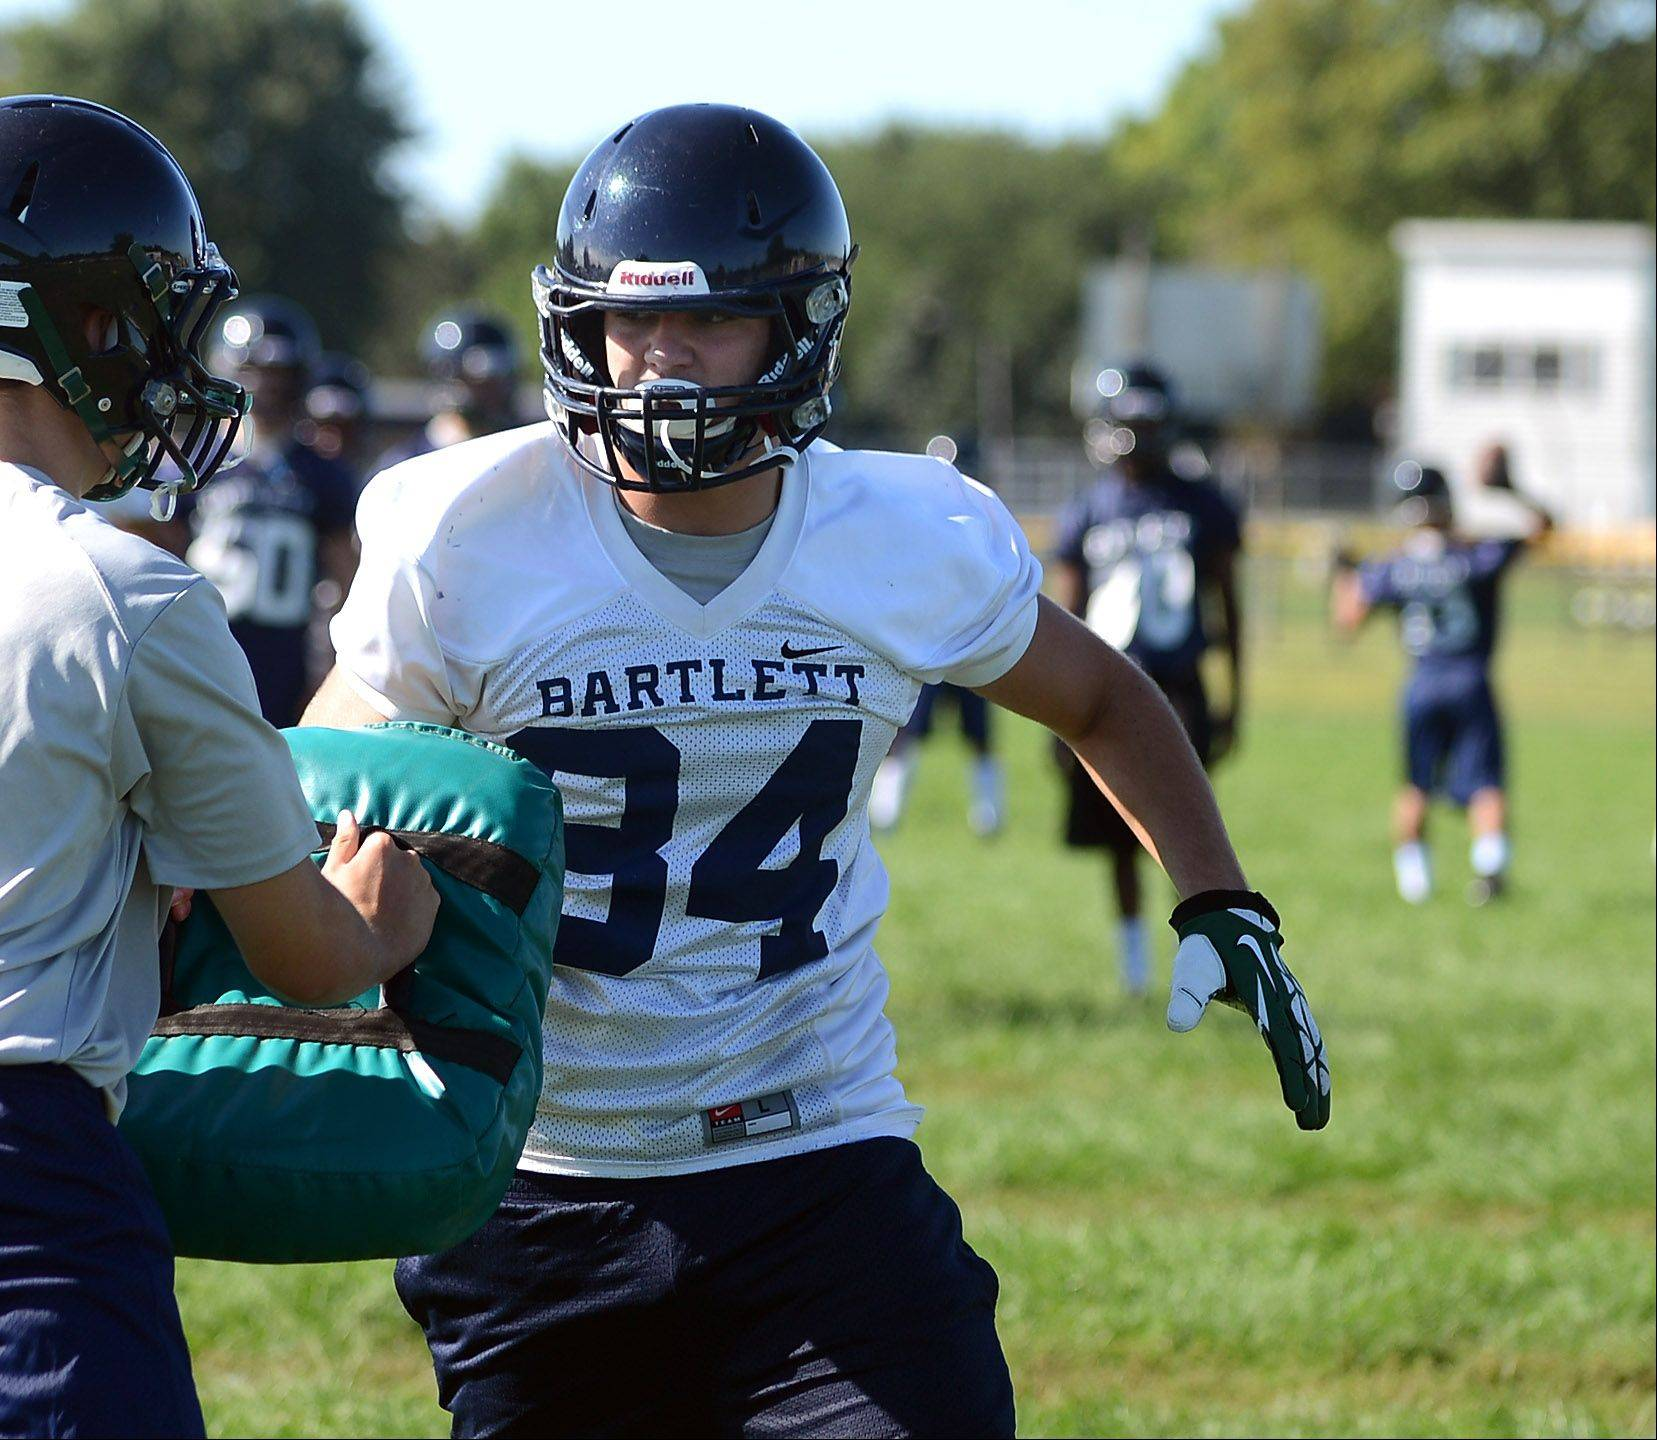 Clint Zierke gets ready to throw a block at Bartlett.